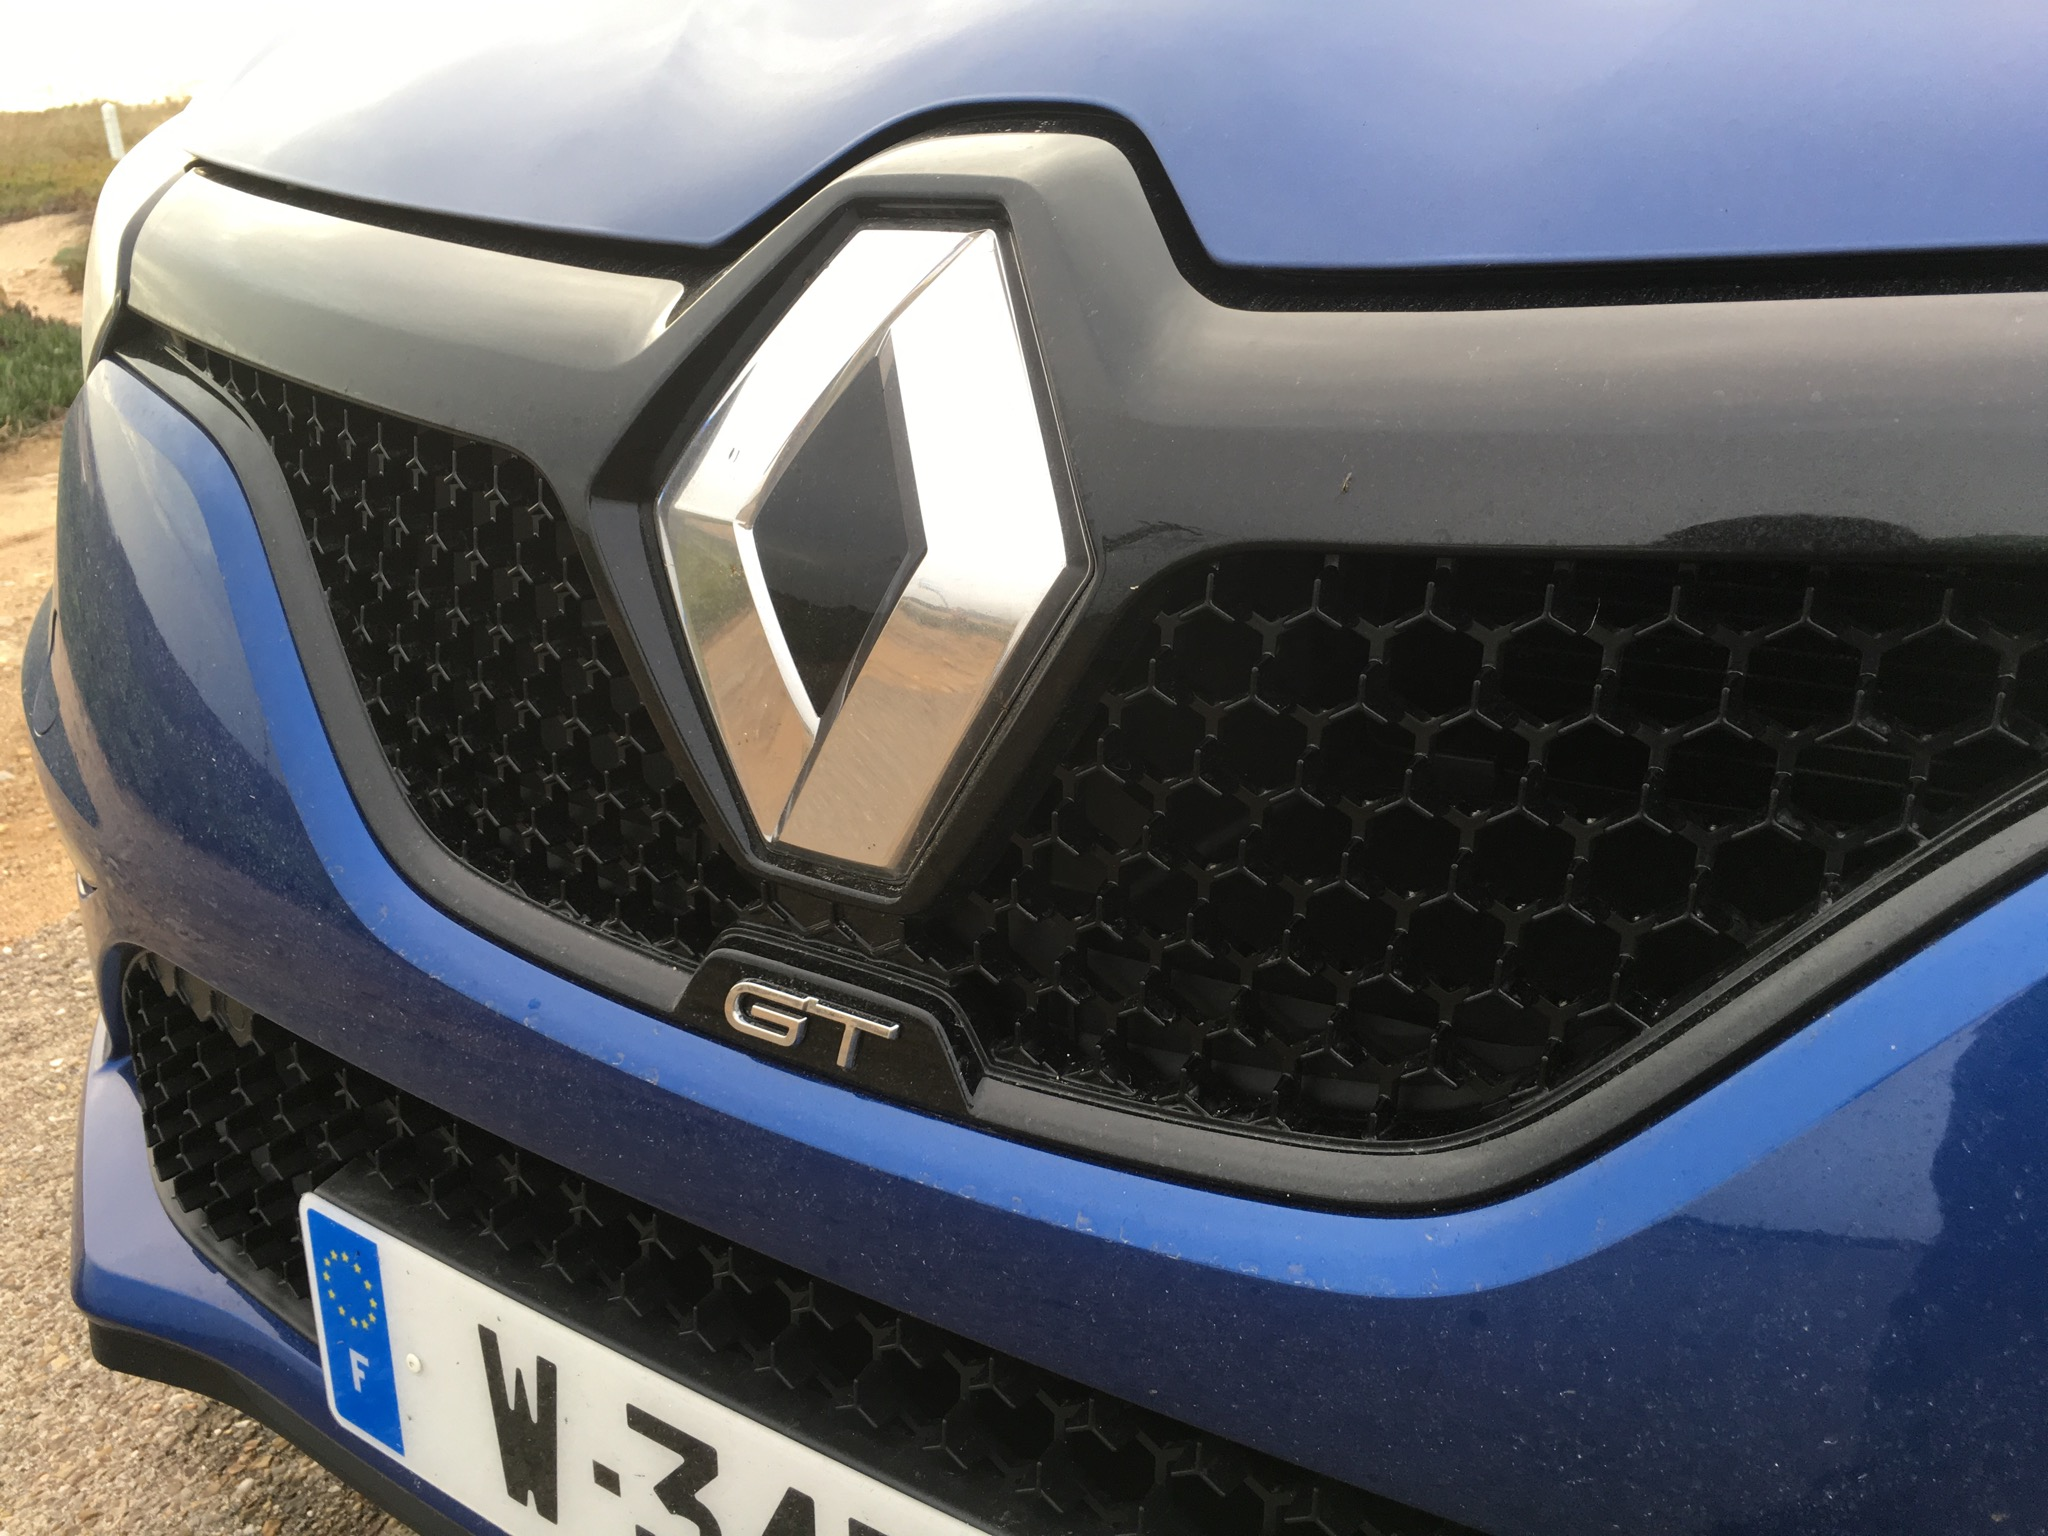 2016 Renault Megane Gt Grille (Photo 7 of 27)